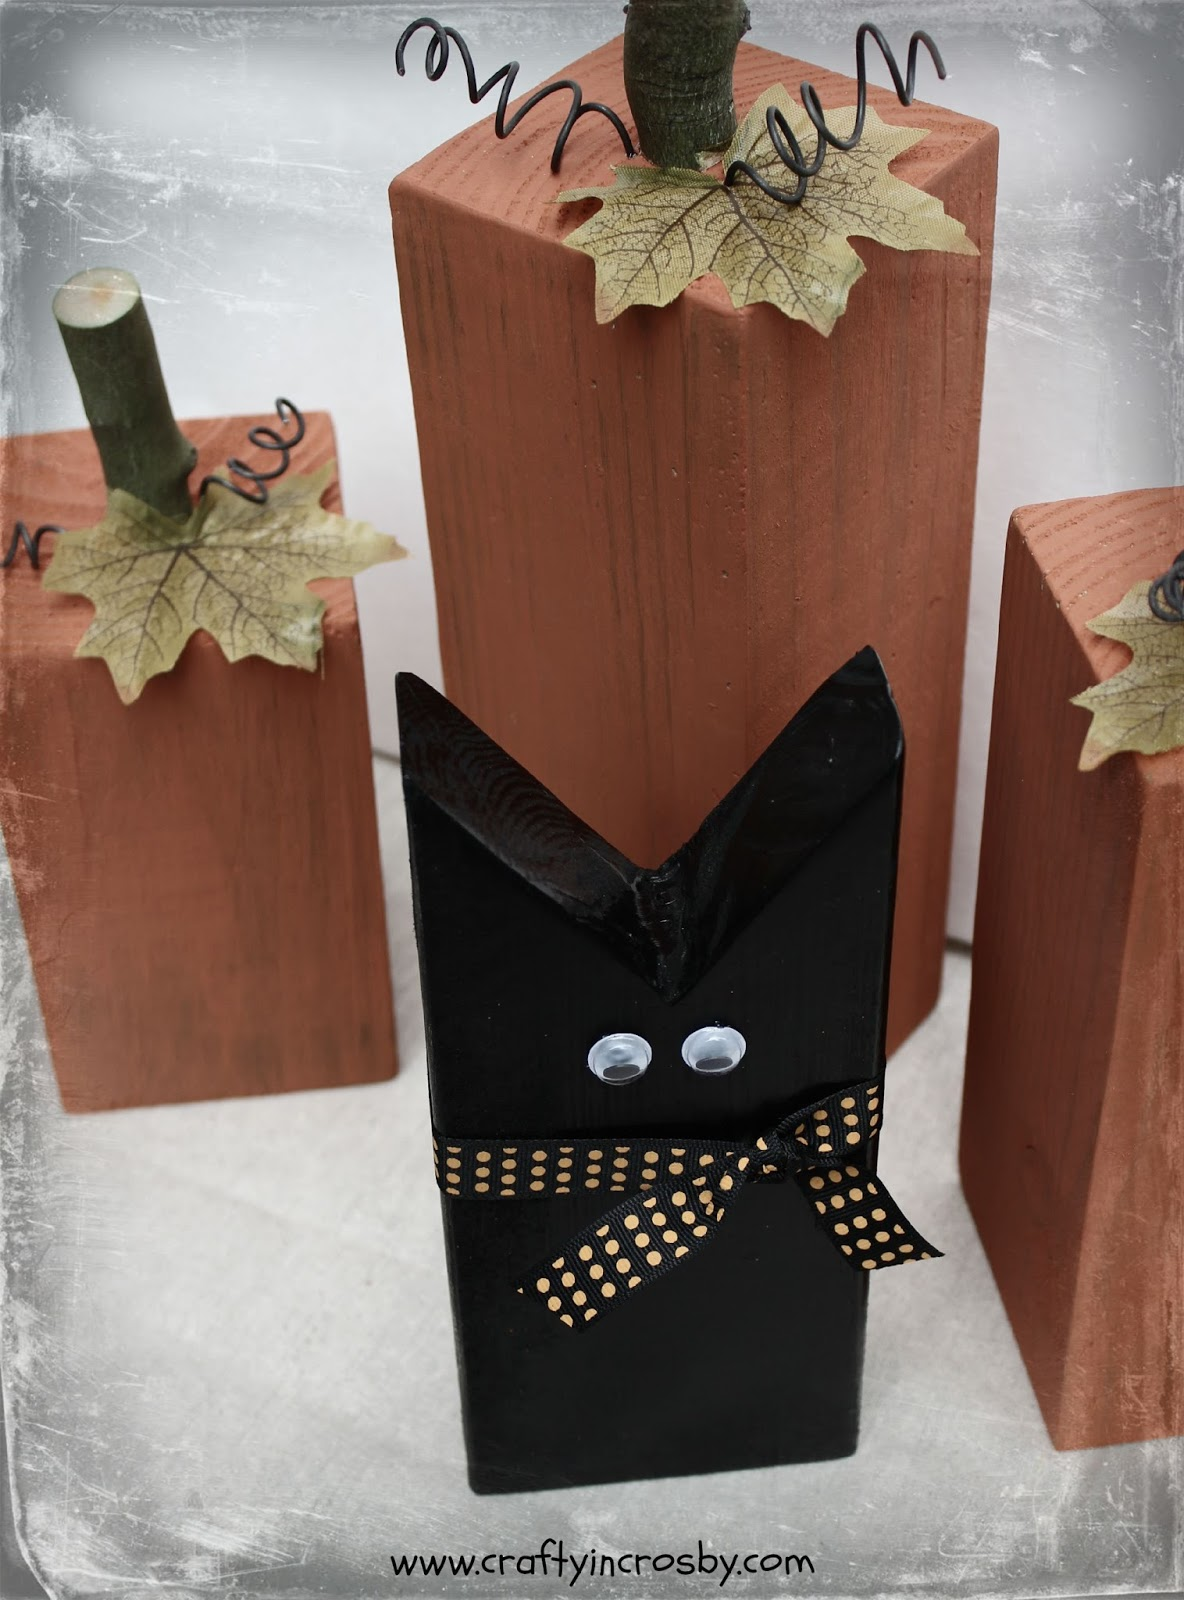 Black Cat Decorations Crafty In Crosby Fun Fall Pumpkins And A Sweet Black Cat